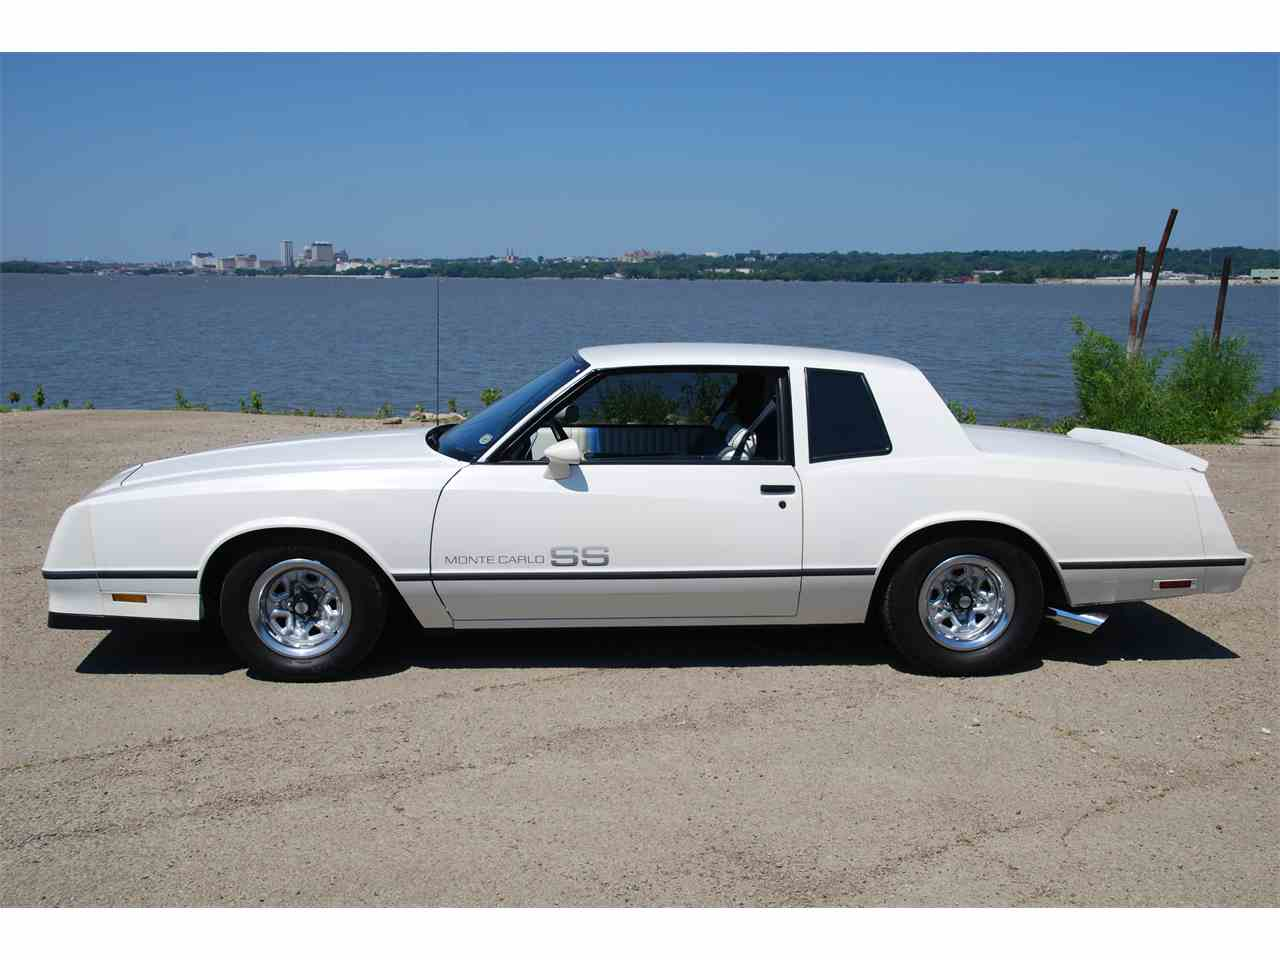 1983 chevrolet monte carlo ss for sale cc 1020597. Black Bedroom Furniture Sets. Home Design Ideas